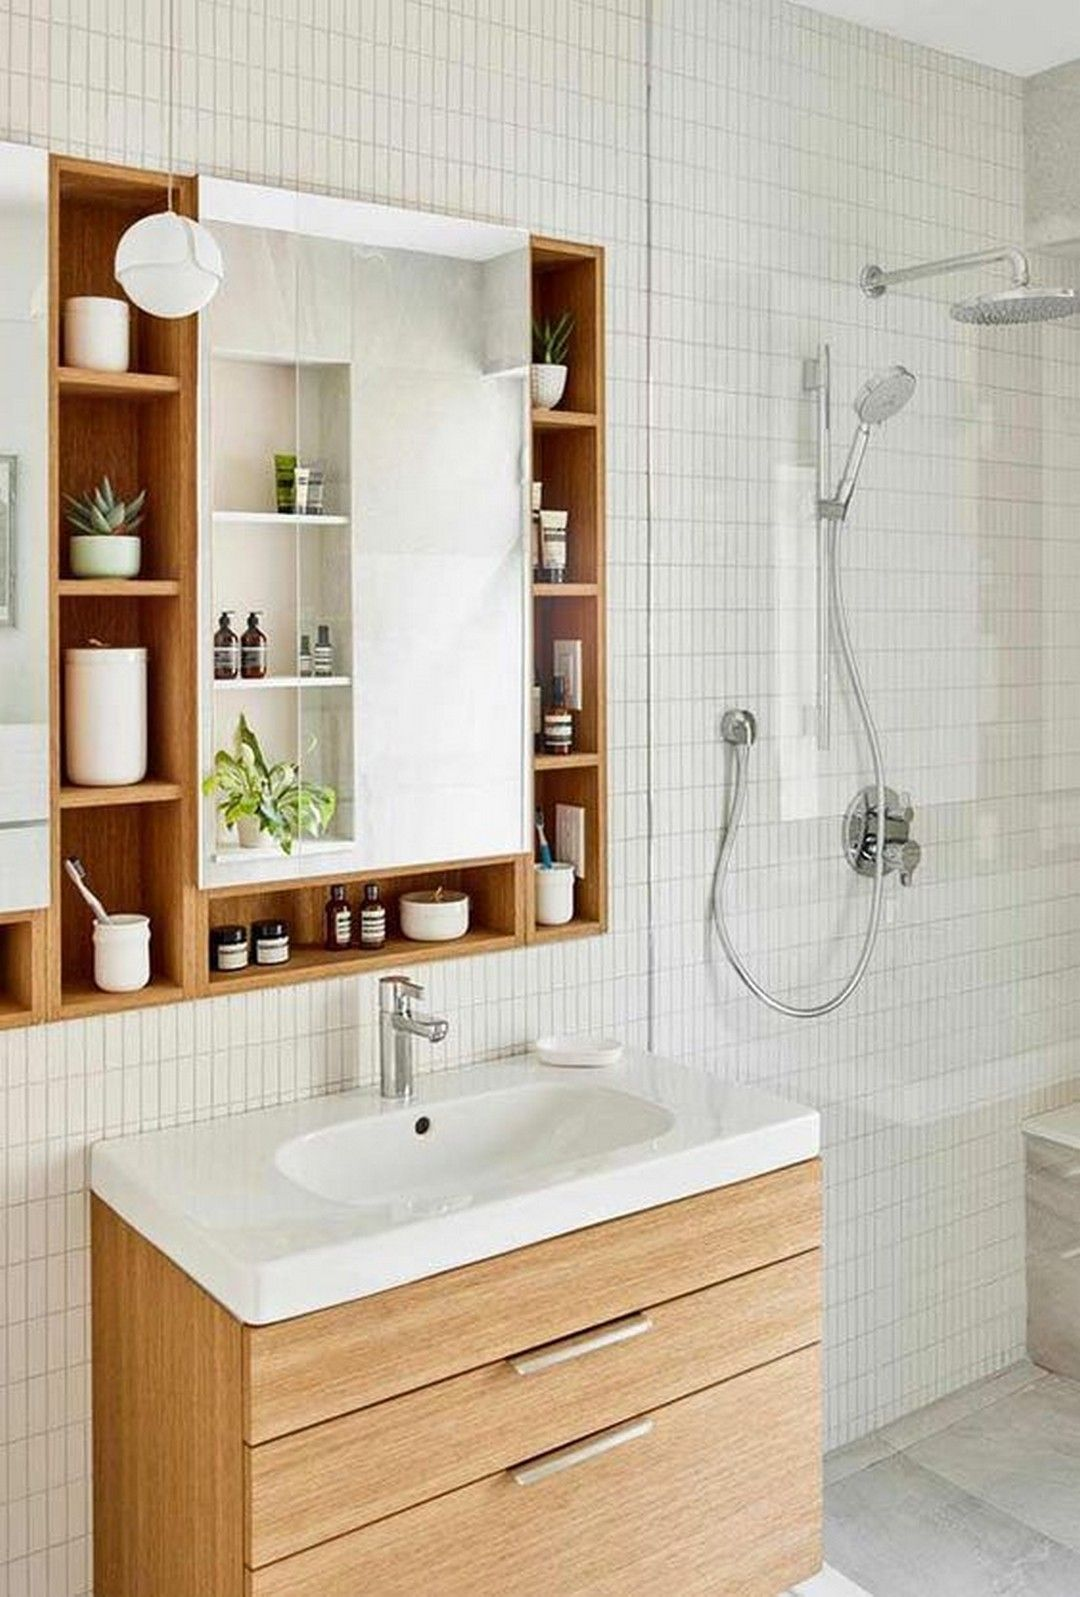 44 Bathroom Storage Ideas For Small Spaces   Apartment ...